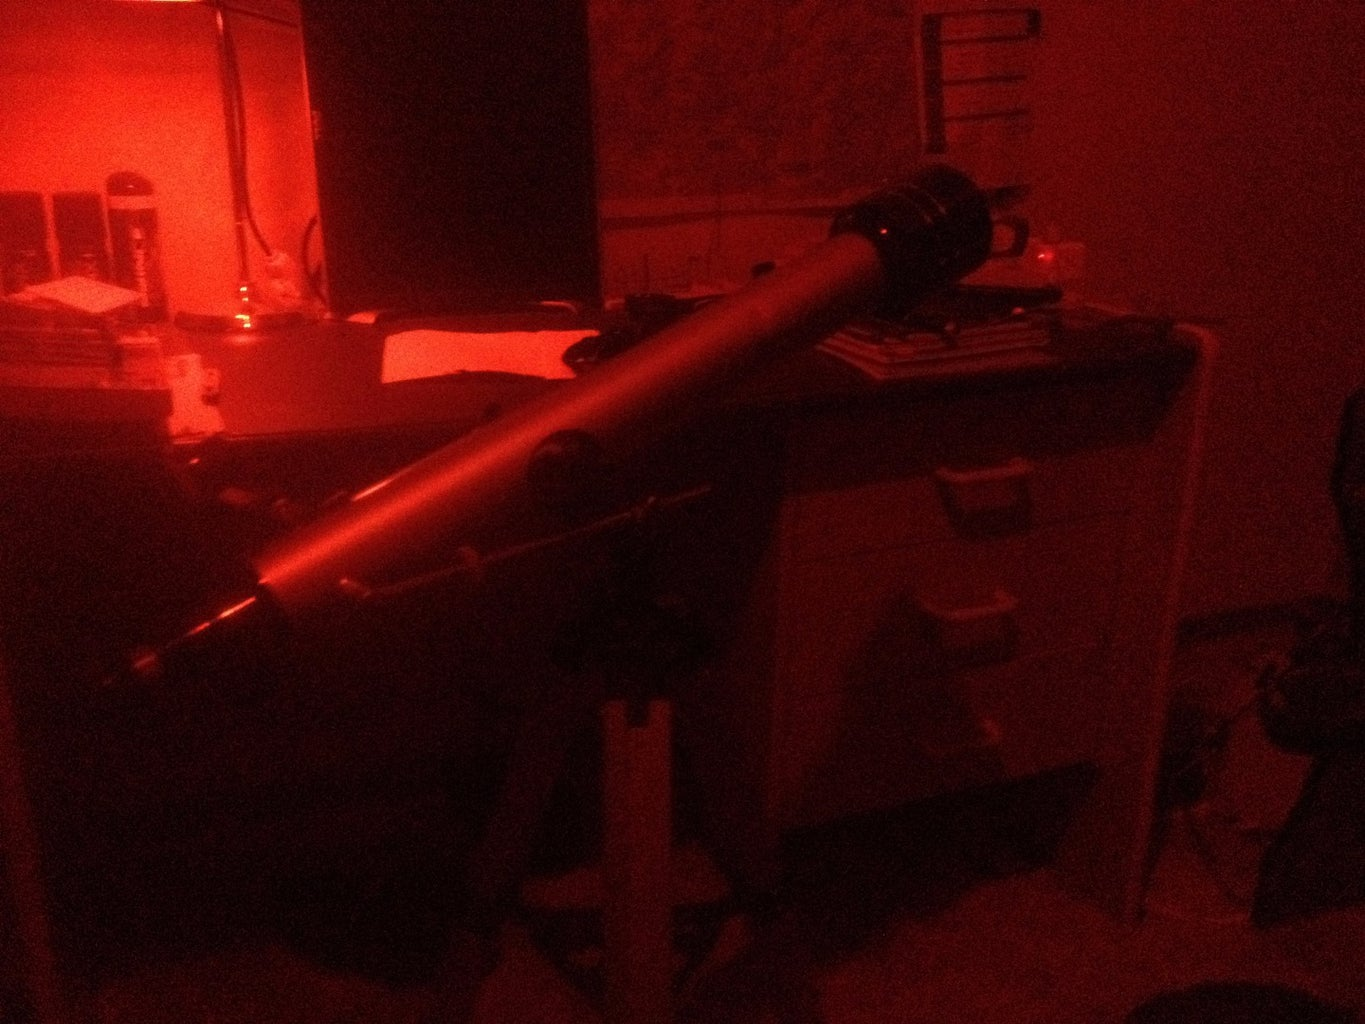 Make a Red Head-torch for Astronomy - Under $10